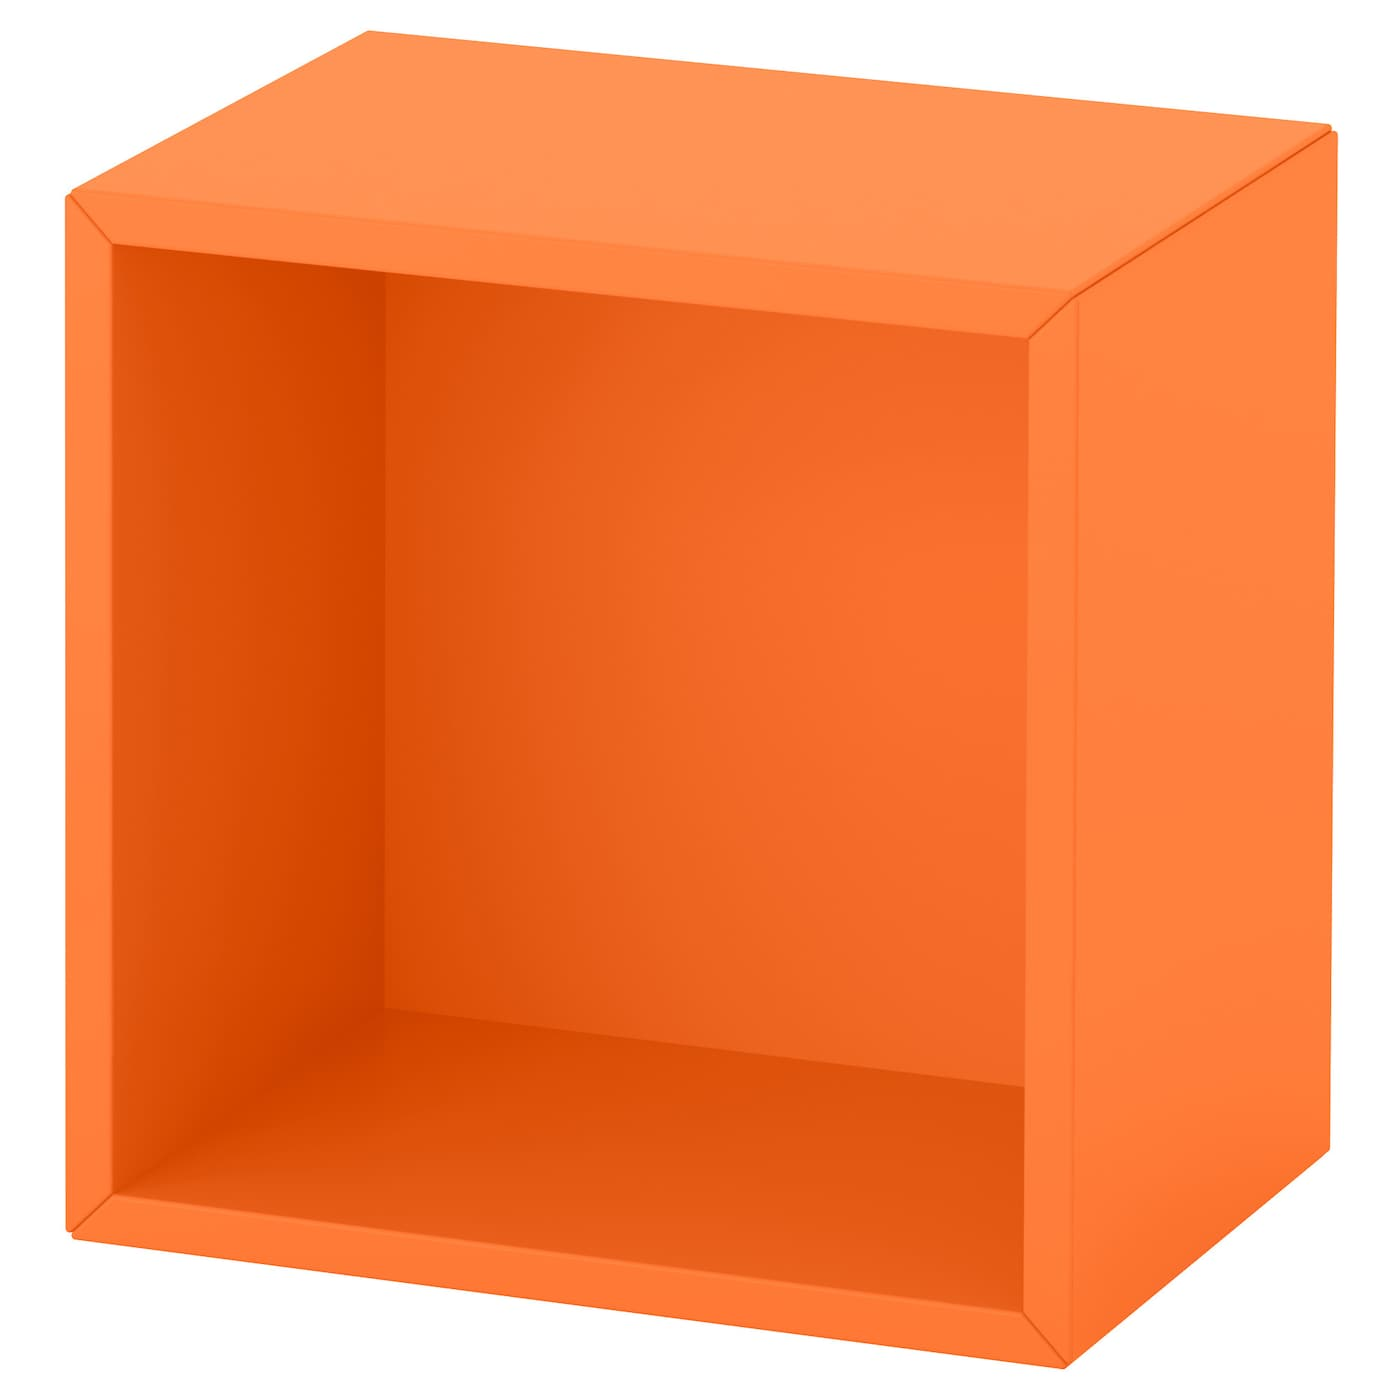 eket rangement orange 35x25x35 cm ikea. Black Bedroom Furniture Sets. Home Design Ideas